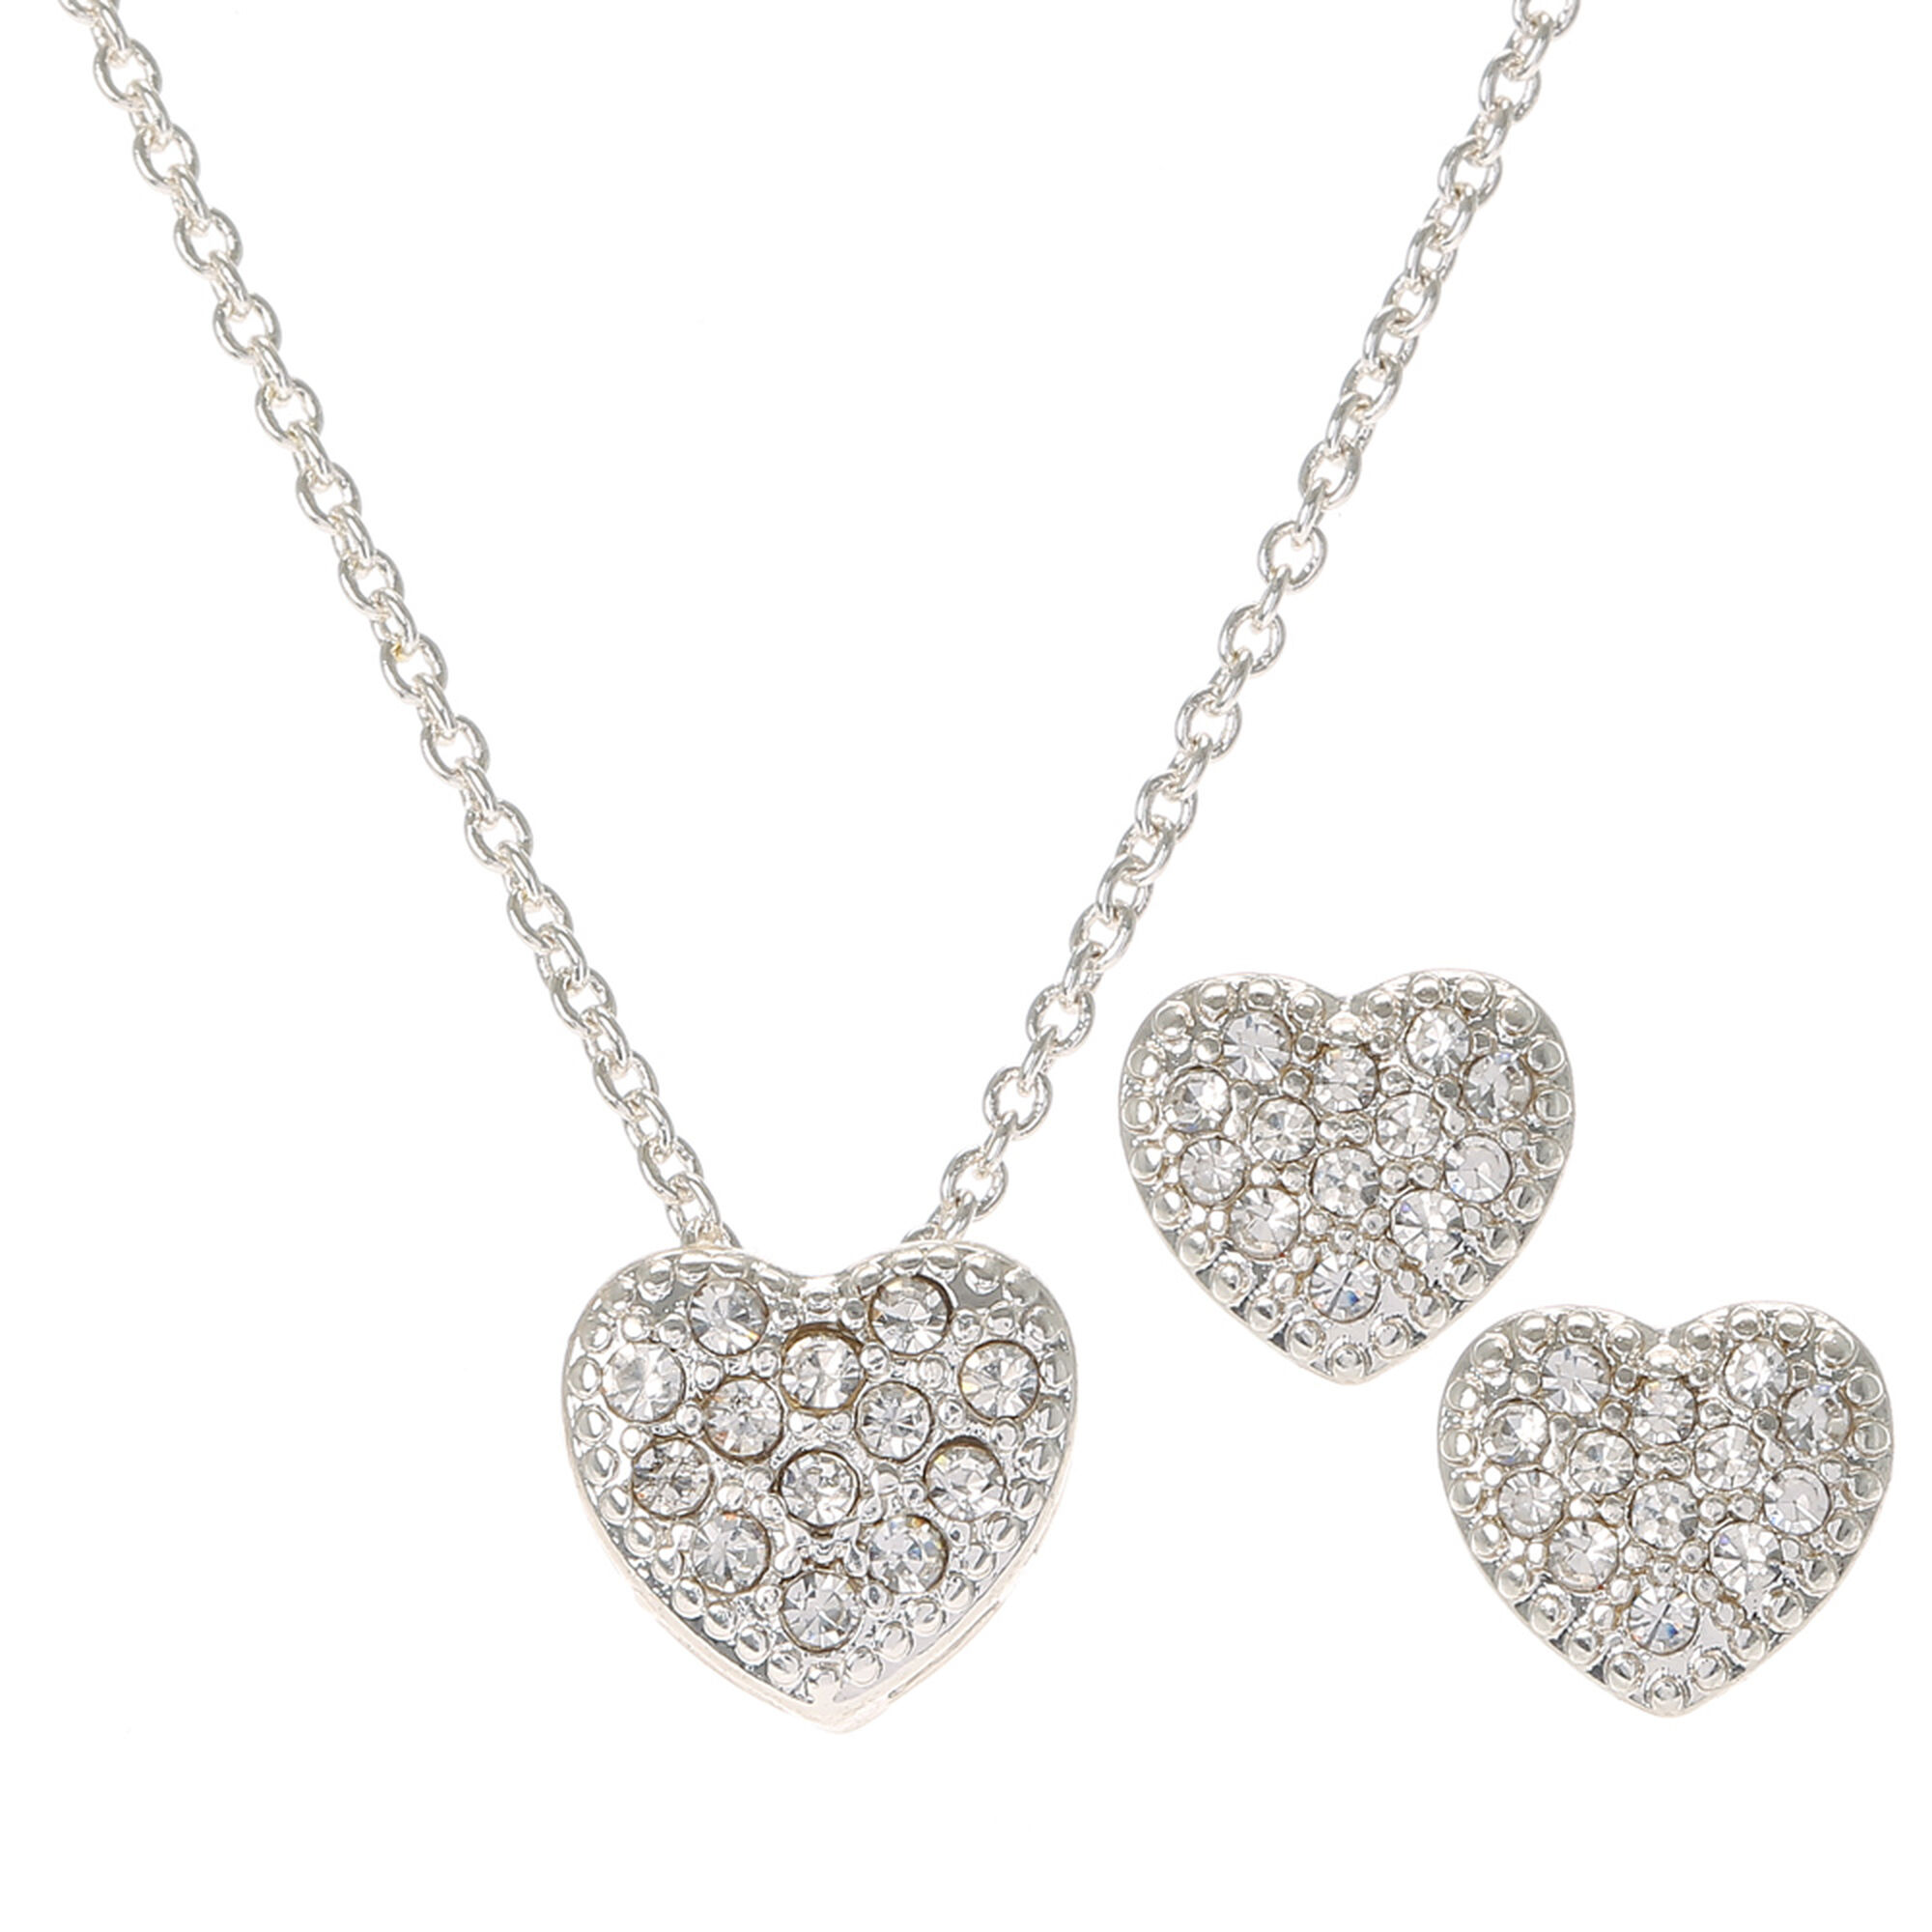 Silver Crystal Heart Necklace Earrings